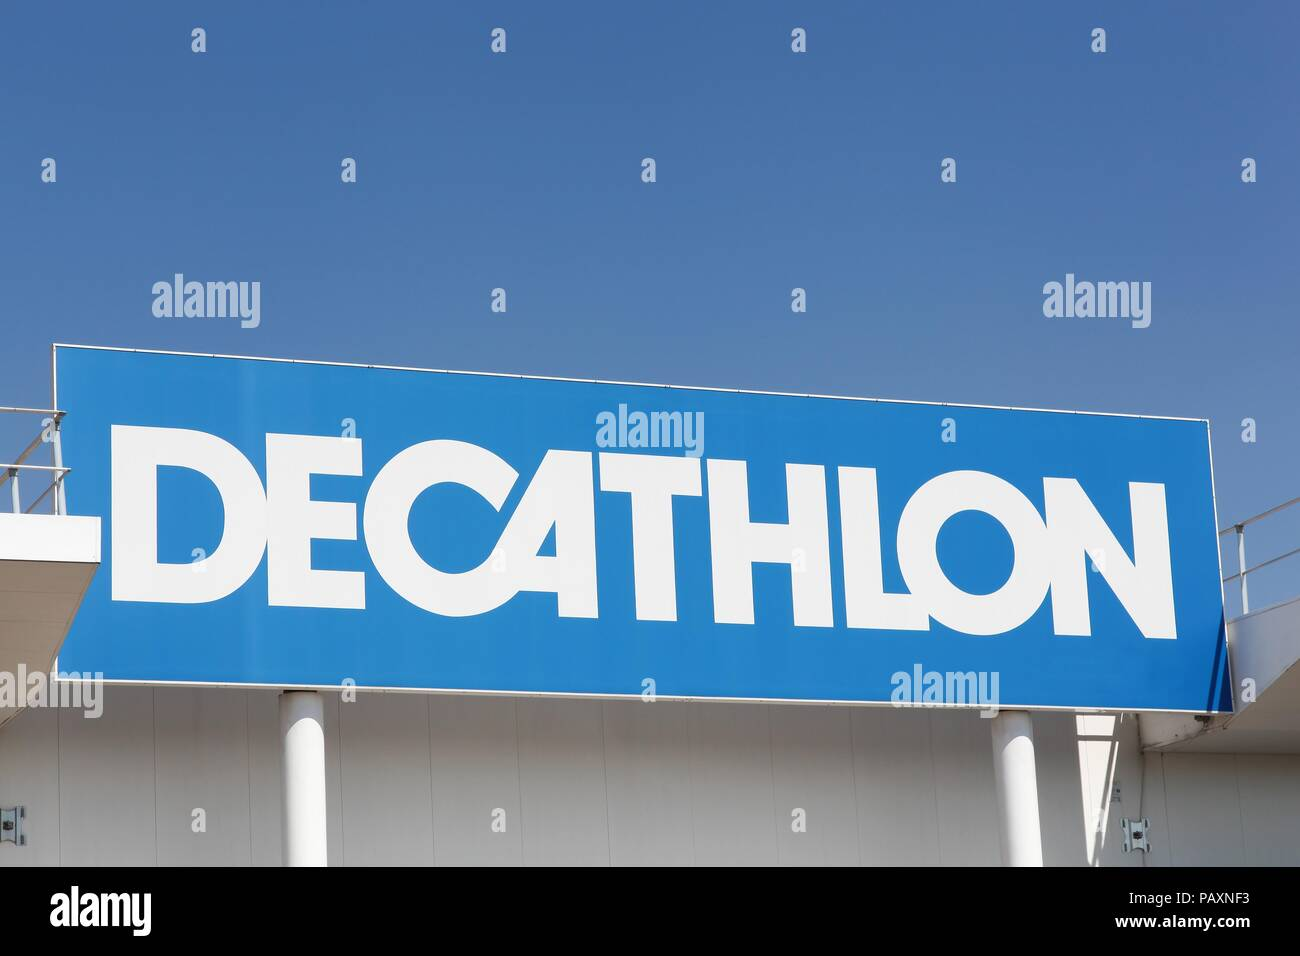 Limonest, France - July 19, 2018: Decathlon sign on a wall